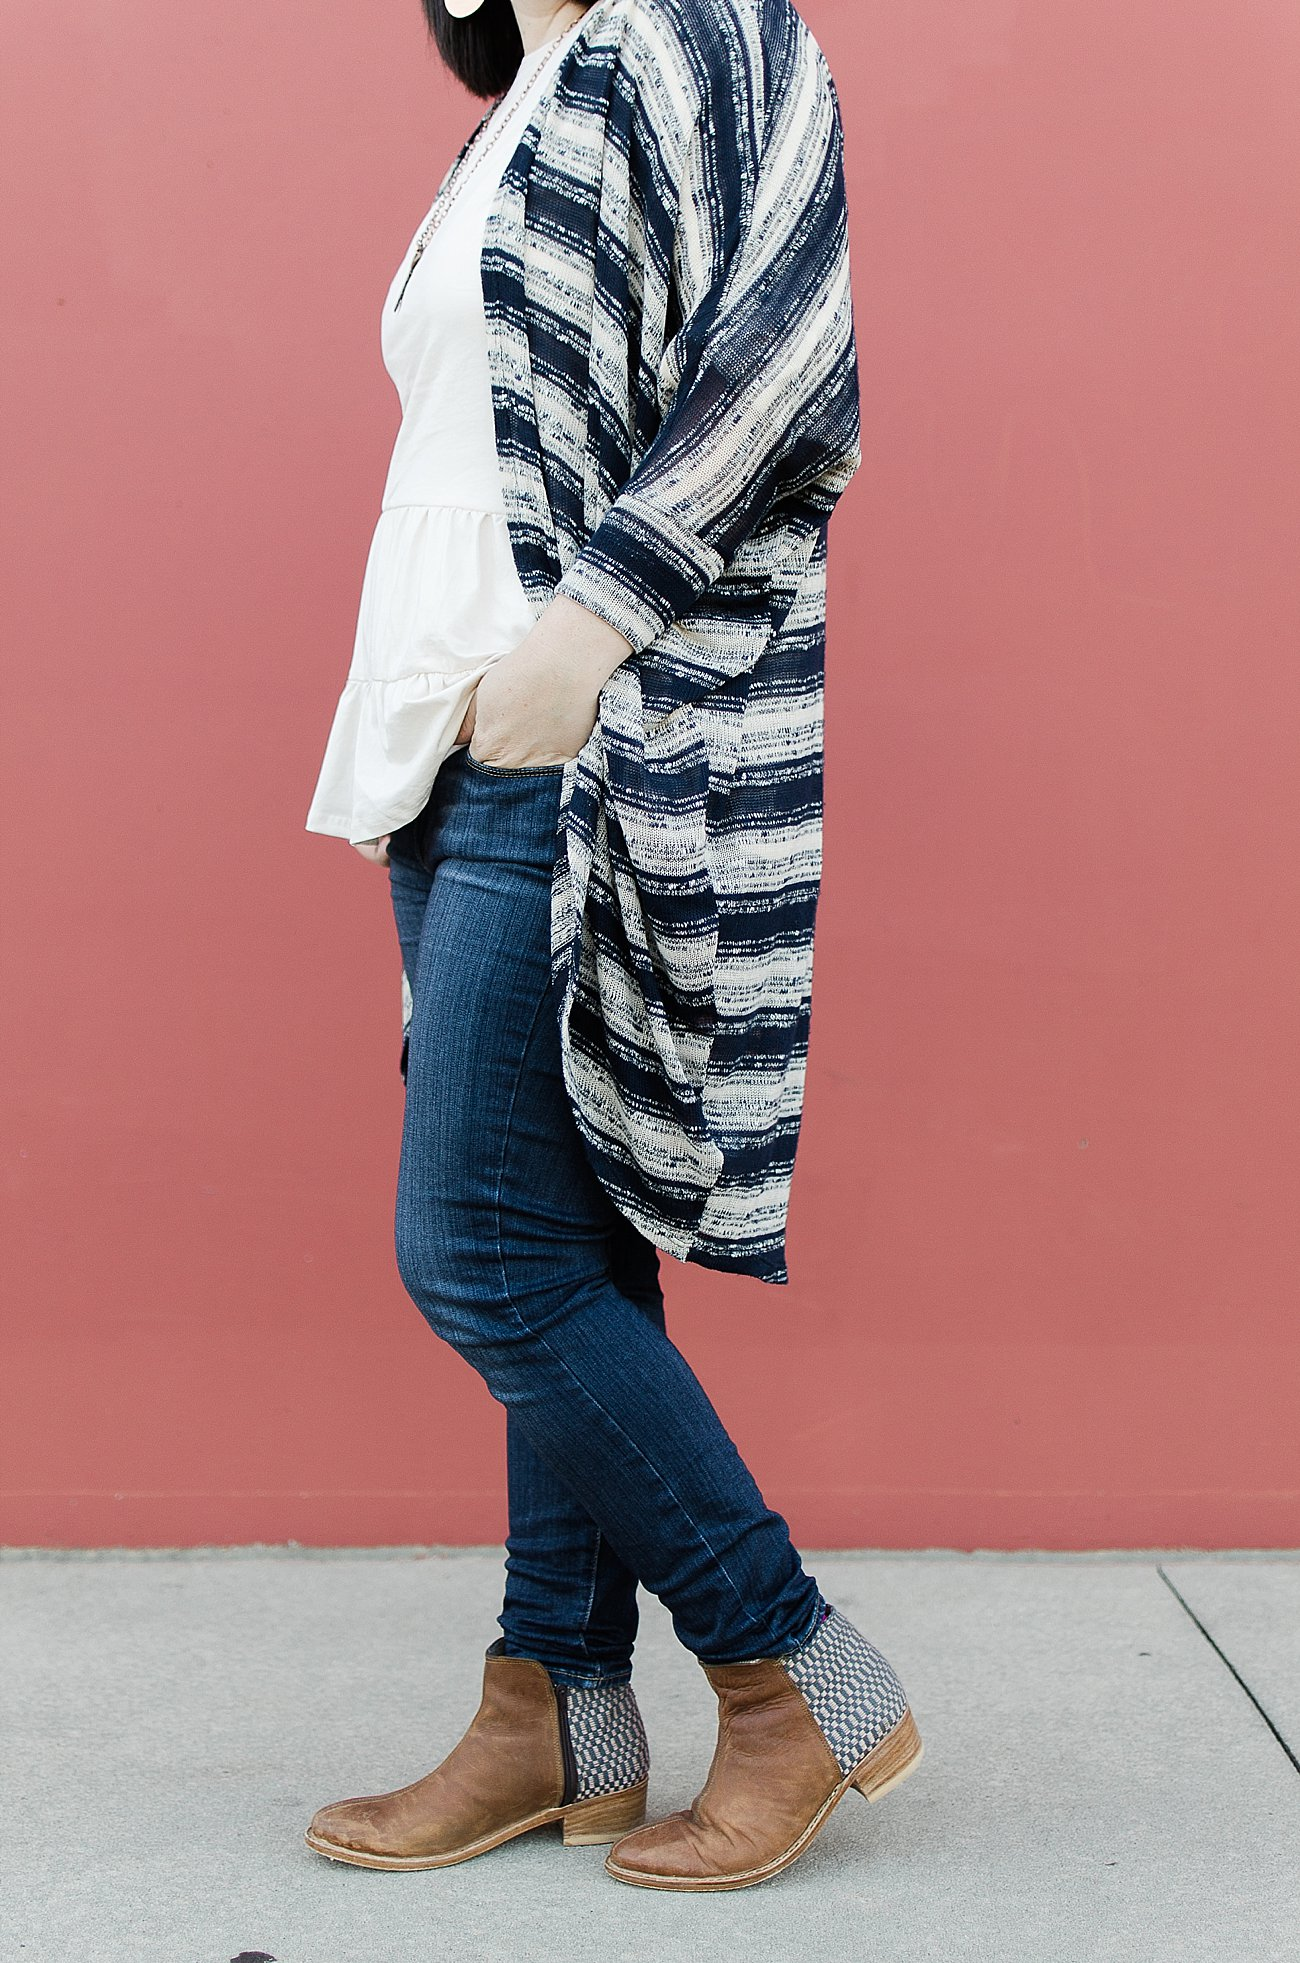 The Giving Keys, The Flourish Market, Elegantees, Paige Denim, The Root Collective booties | Ethical Fashion, fall style (3)